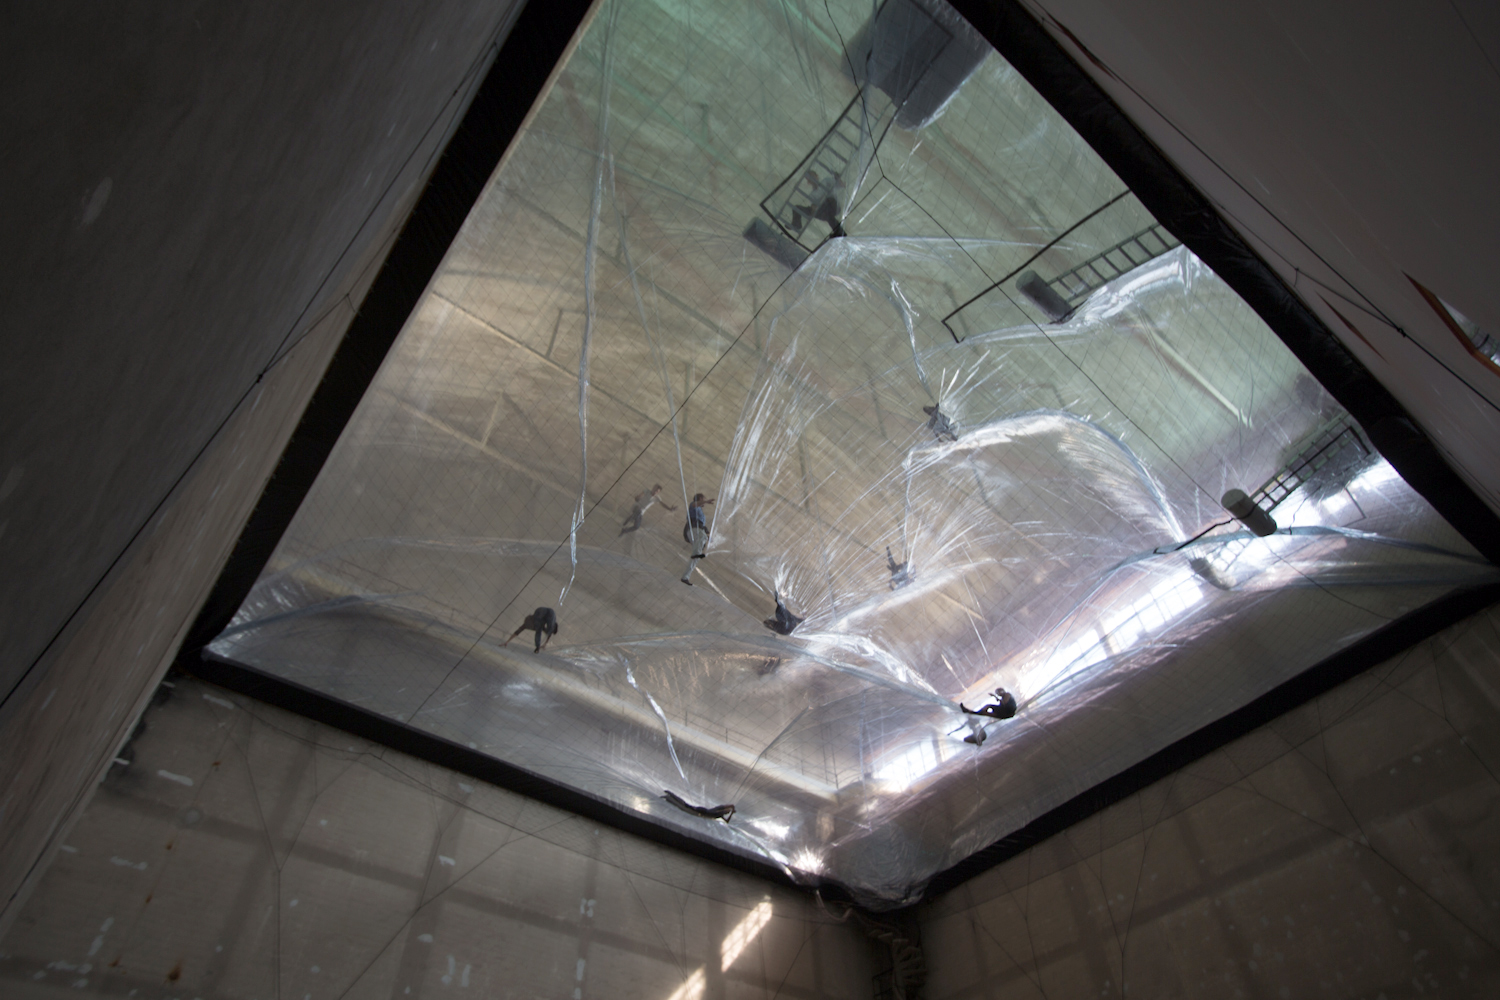 Tomás Saraceno, On Space Time Foam, 2012. Photo: Alessandro Coco. Courtesy: Fondazione Hangar Bicocca, Milano.